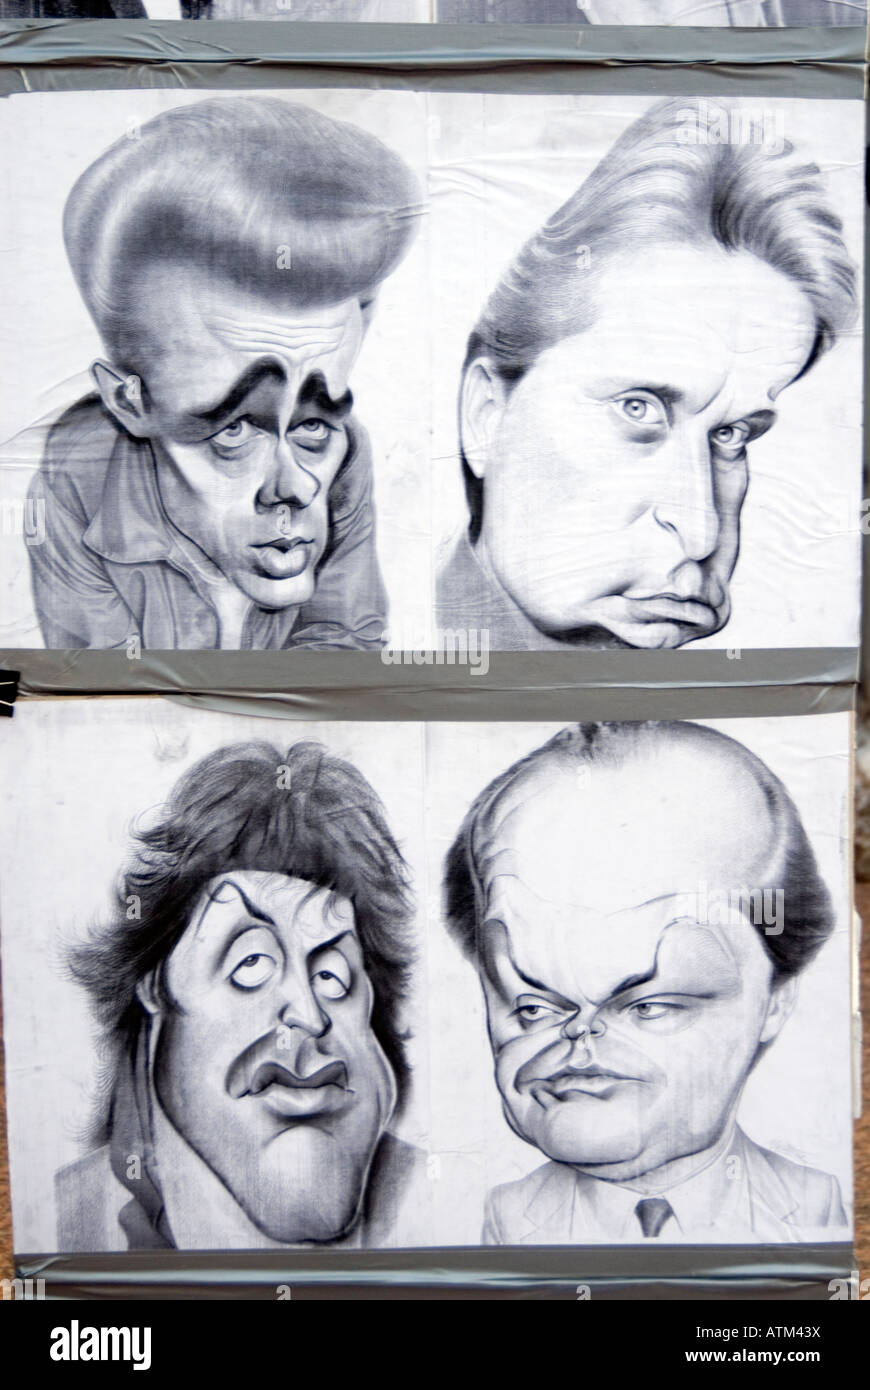 Caricatures of famous American actors drawn by Leicester Square street portrait artist London England UK - Stock Image